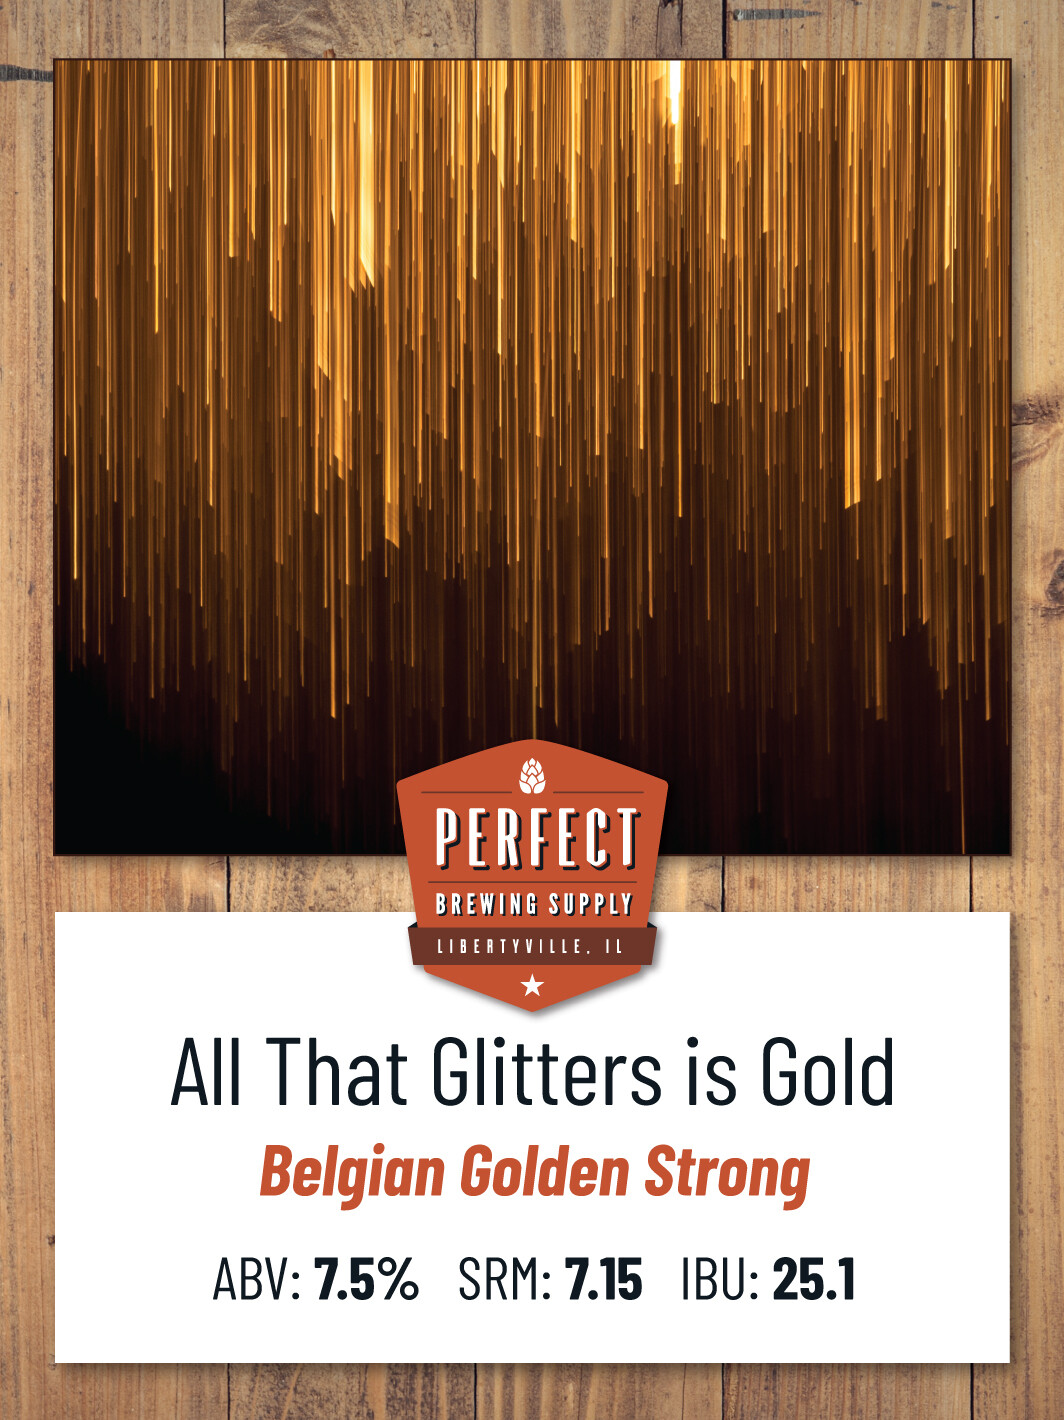 All That Glitters is Gold - PBS Kit